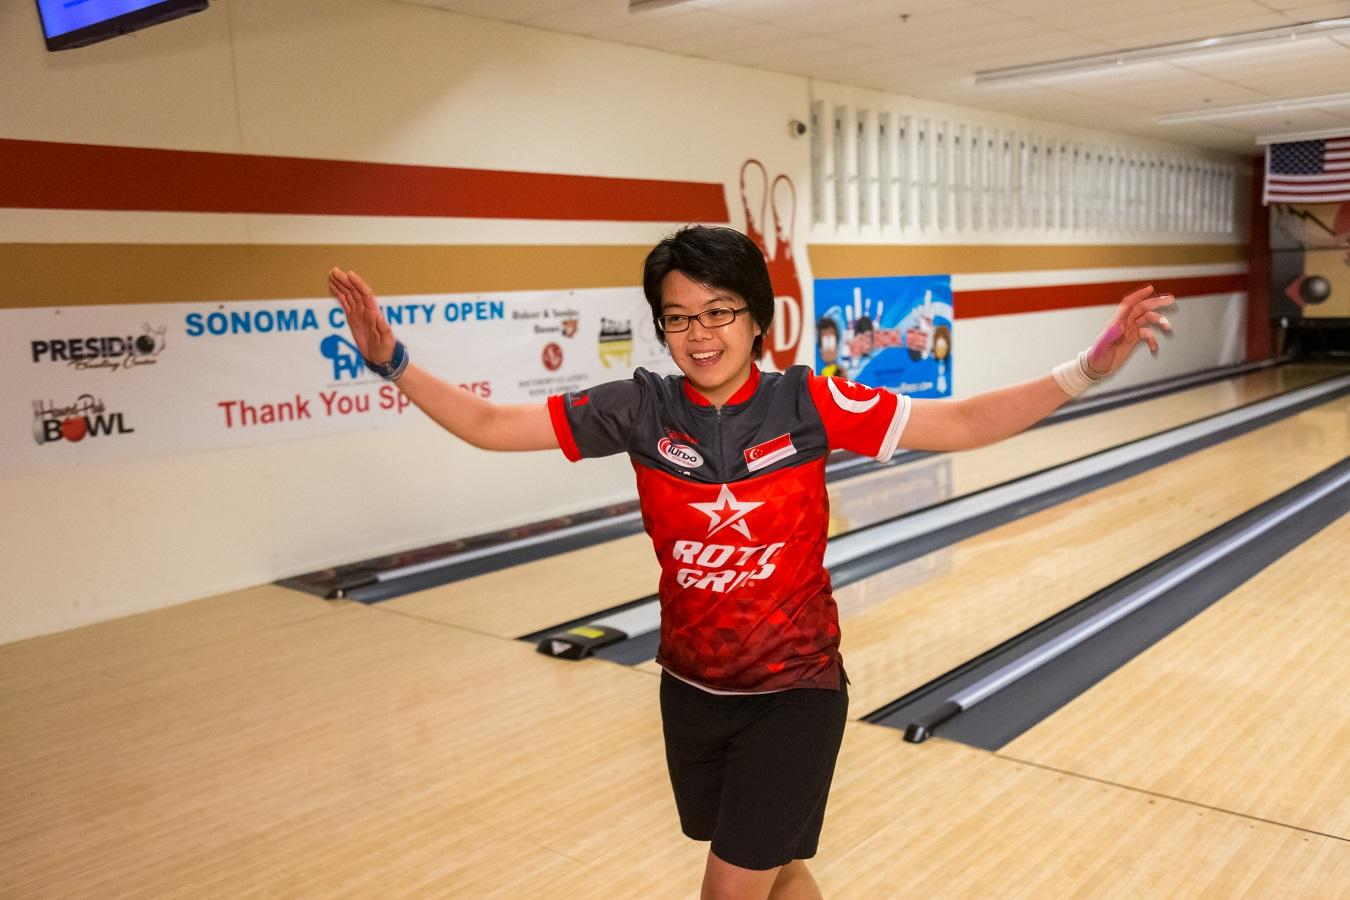 World Bowling Women's Championships Concludes with Singapore's Cherie Tan Winning Masters Gold